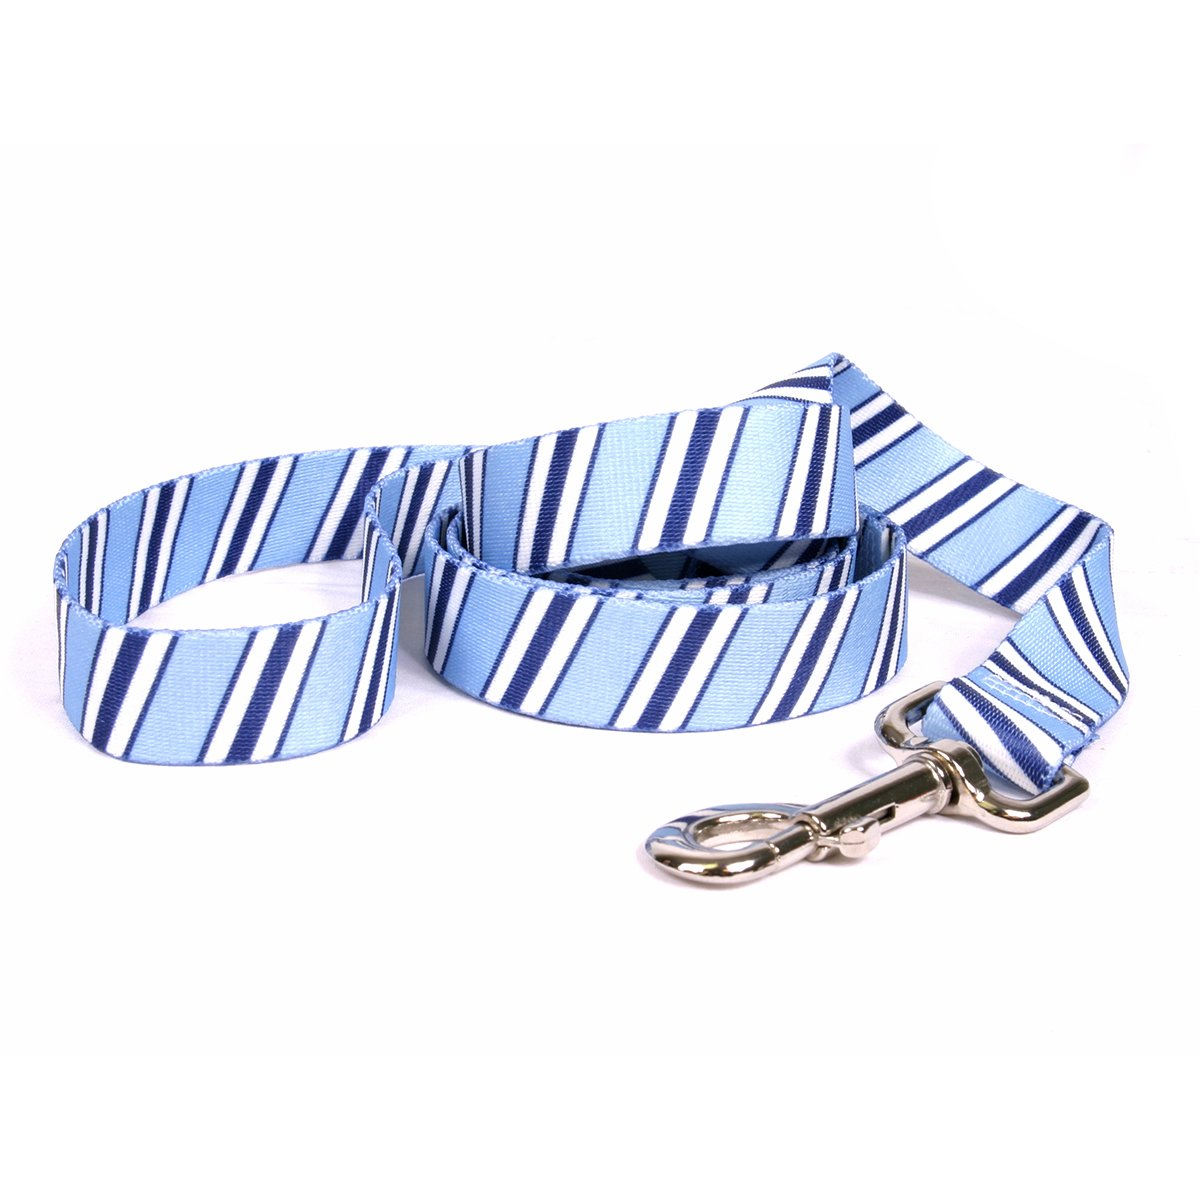 Yellow Dog Design Team Spirit Lt. Blue, Dark Blue and White Dog Leash-Size Large-1'' Wide and 5 feet (60'') Long